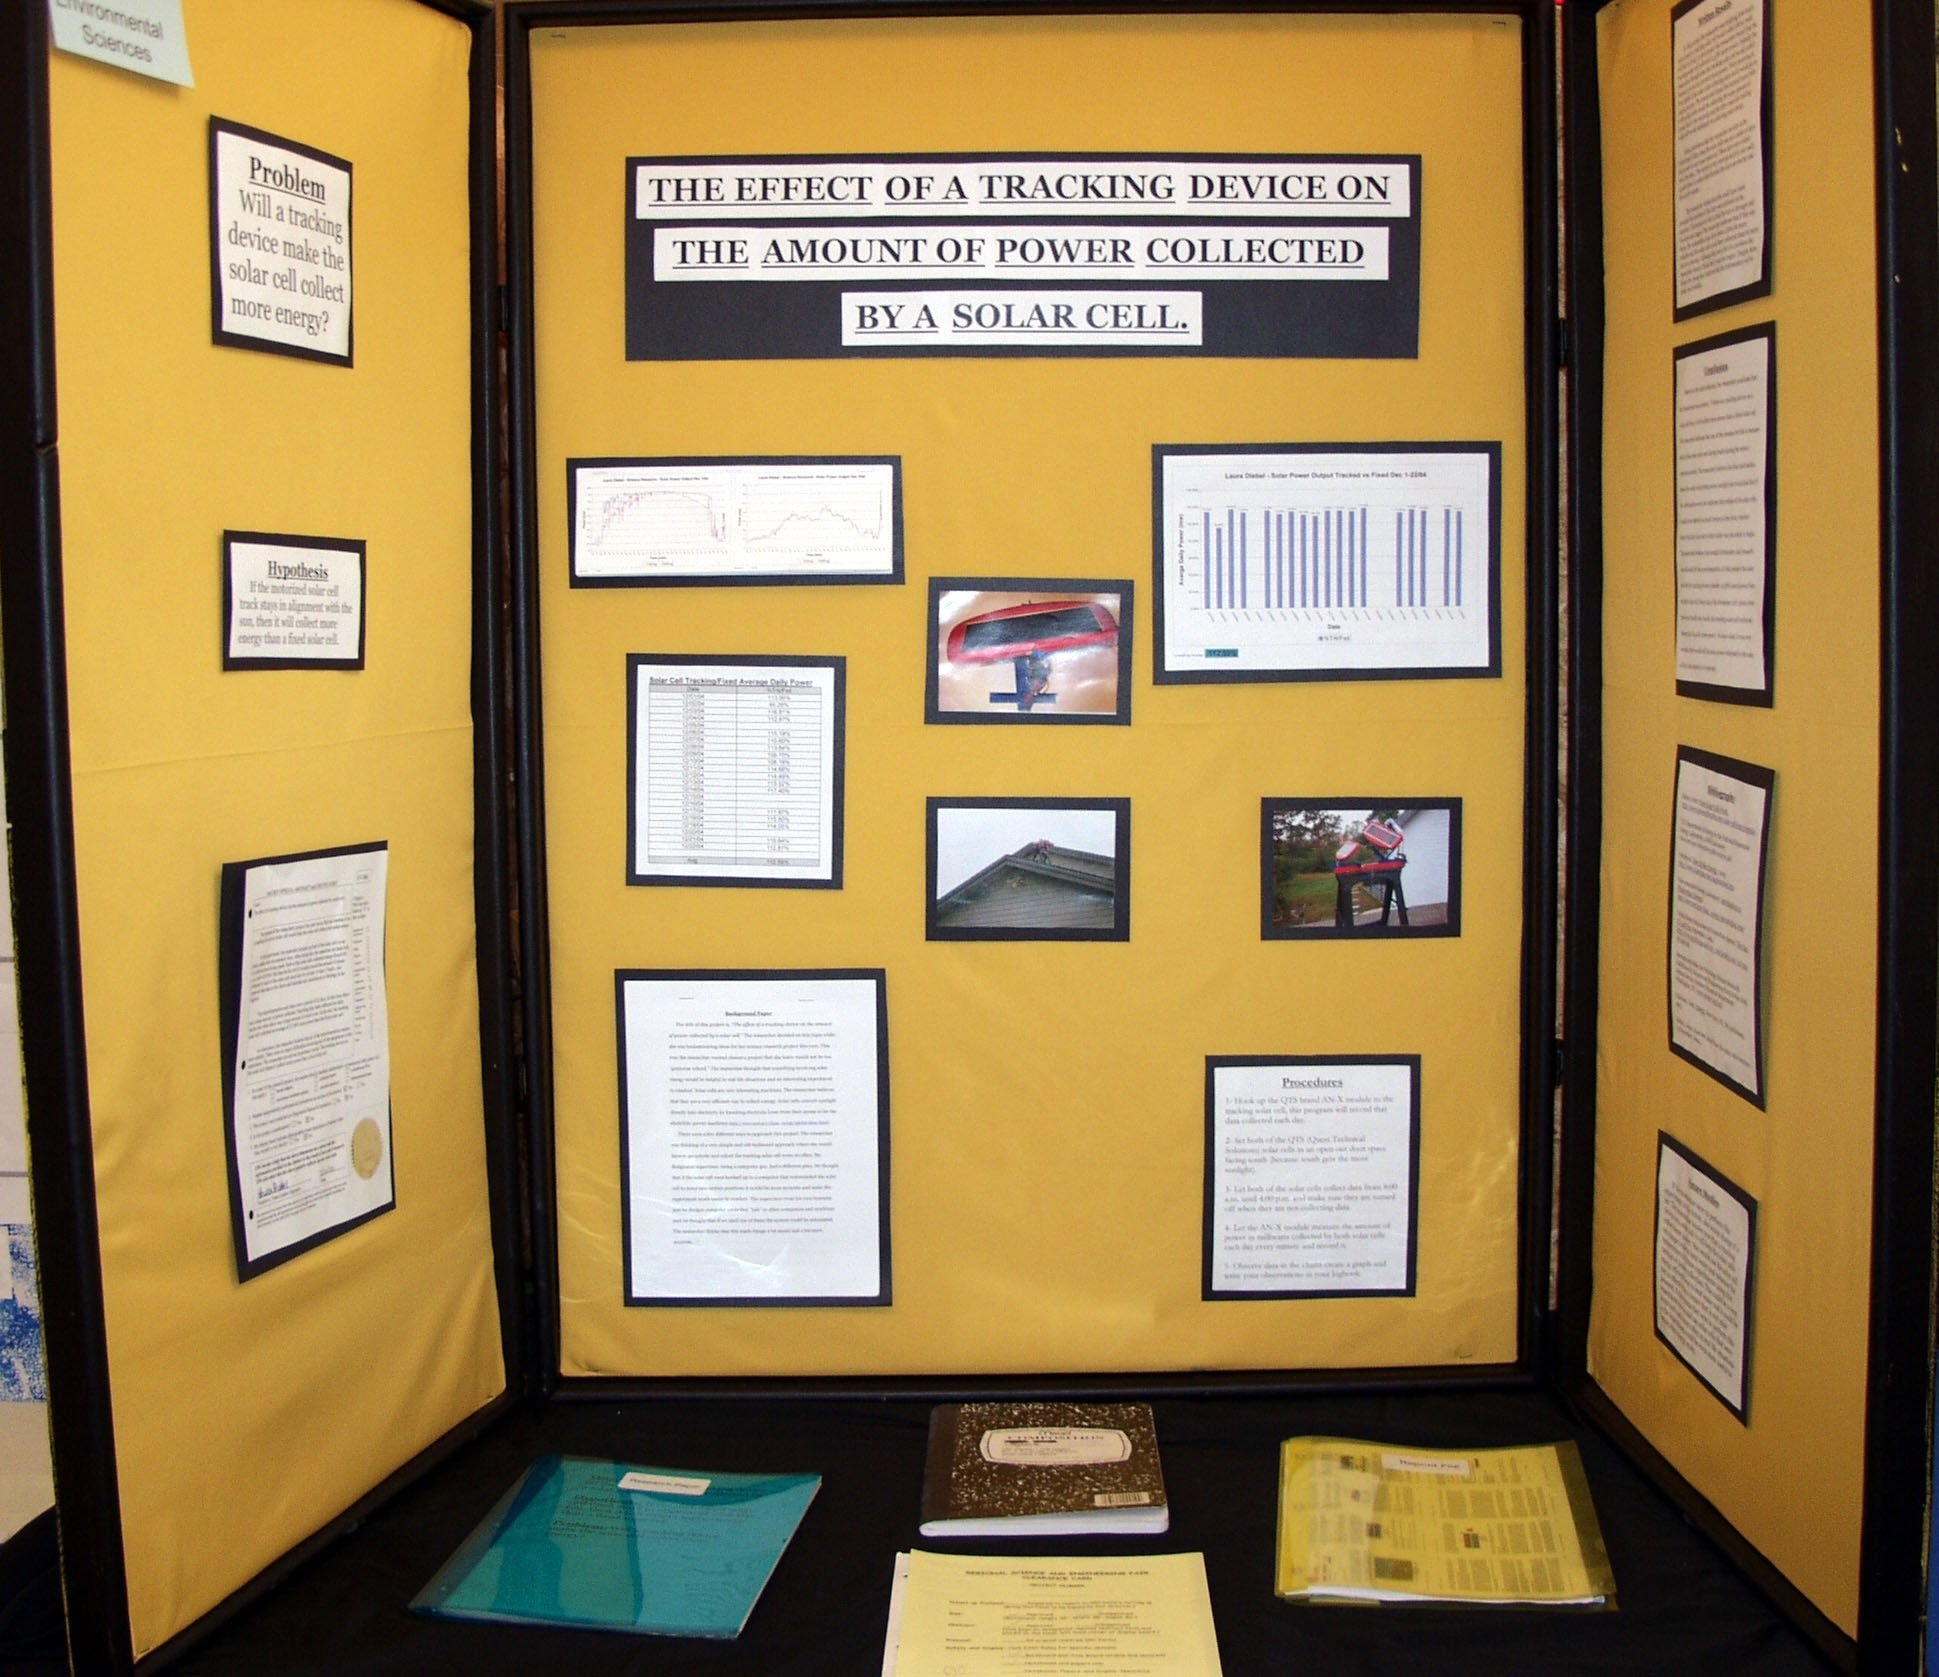 10 Attractive Science Fair Project Ideas For 9Th Grade science fair projects 9th grade essay help 1 2021